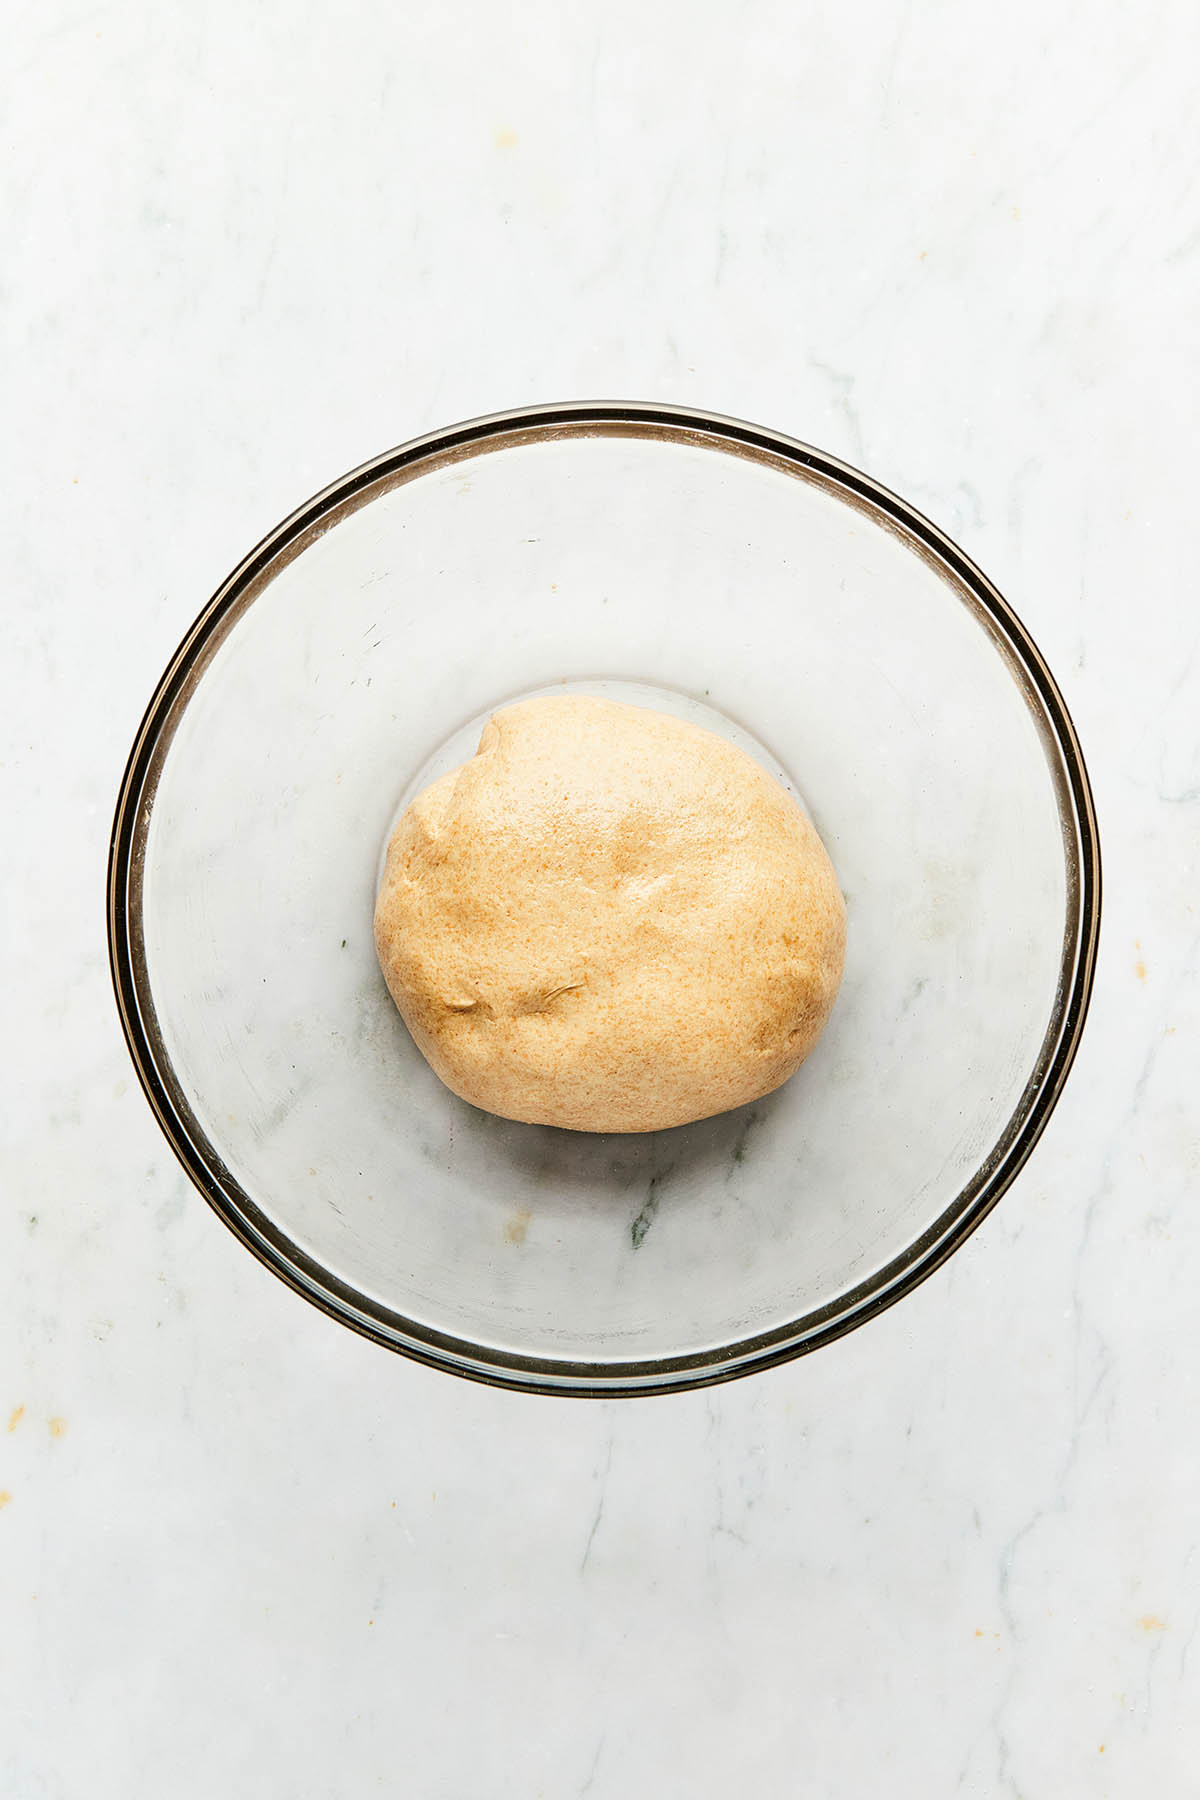 A ball of pizza dough in a glass bowl.